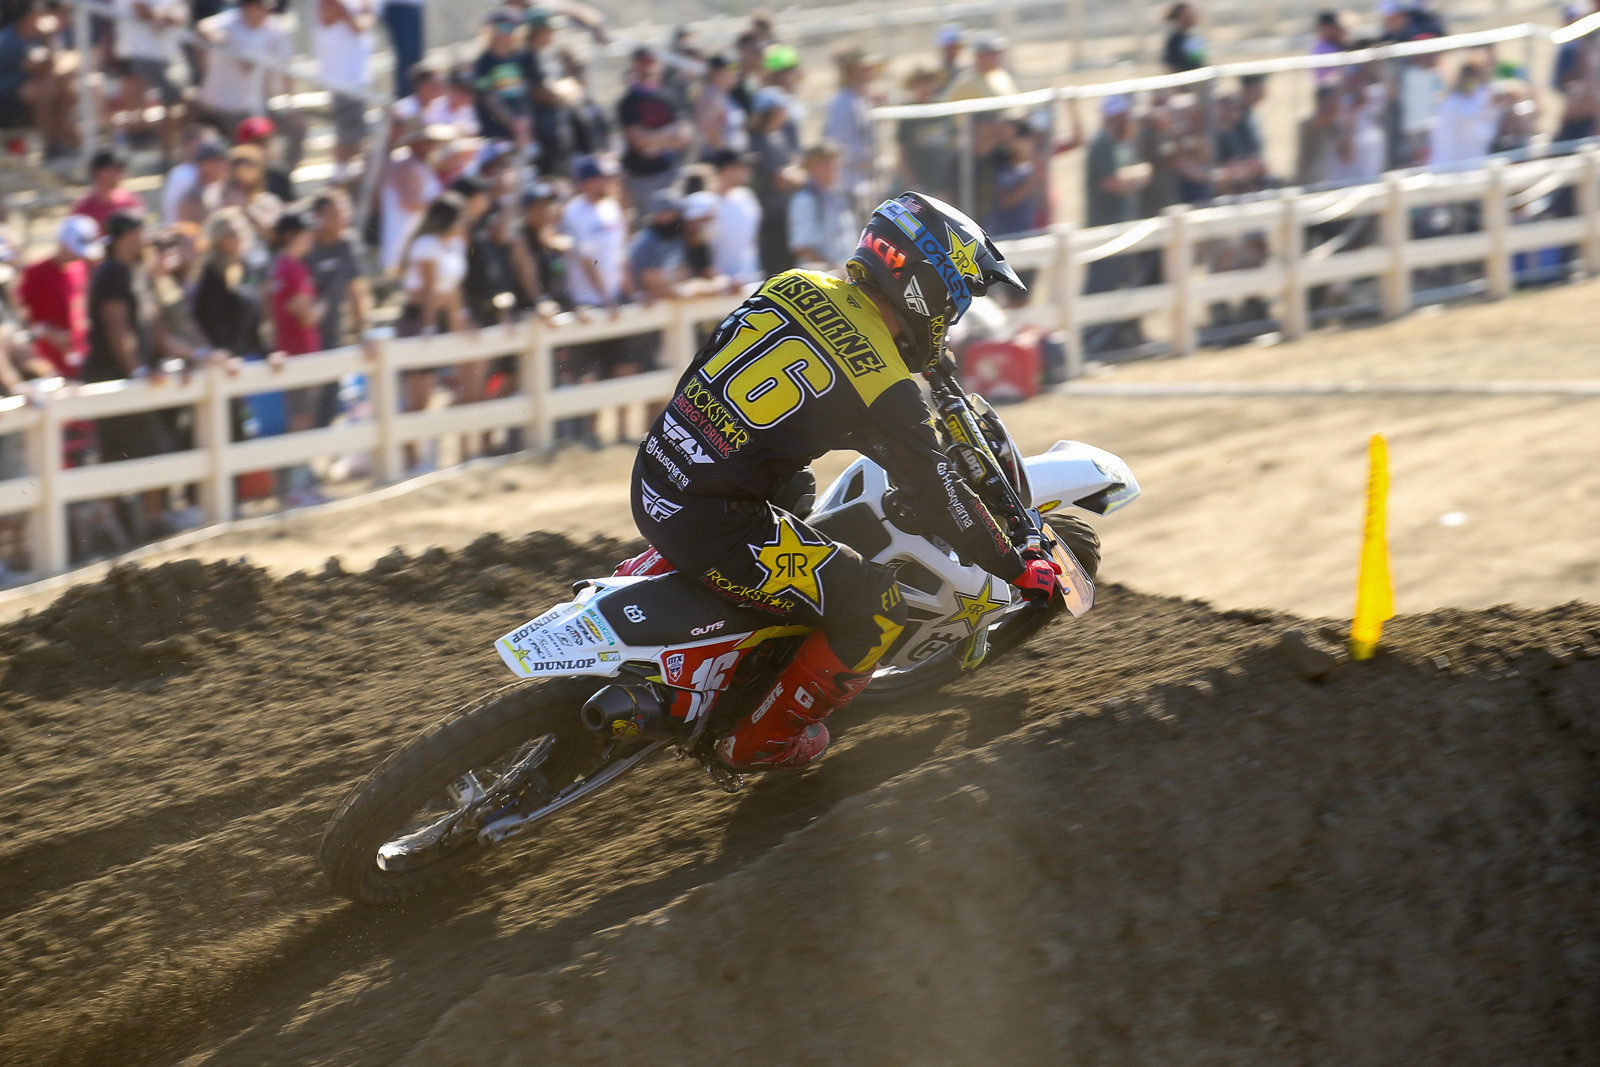 2021 AMA Motocross/Supercross National Rider Numbers